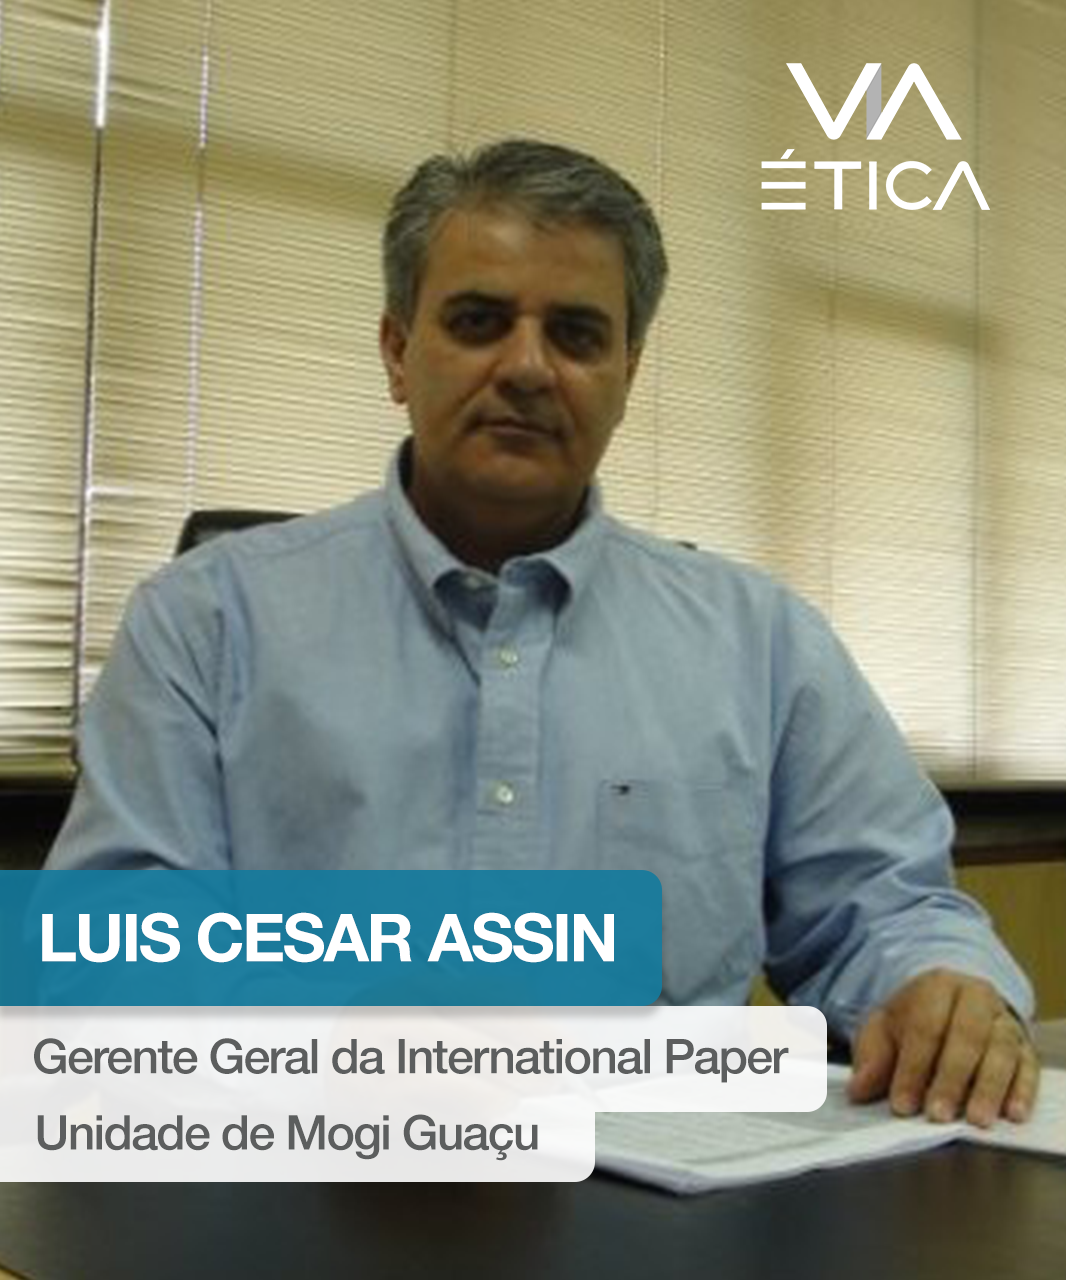 Luis Cesar Assin